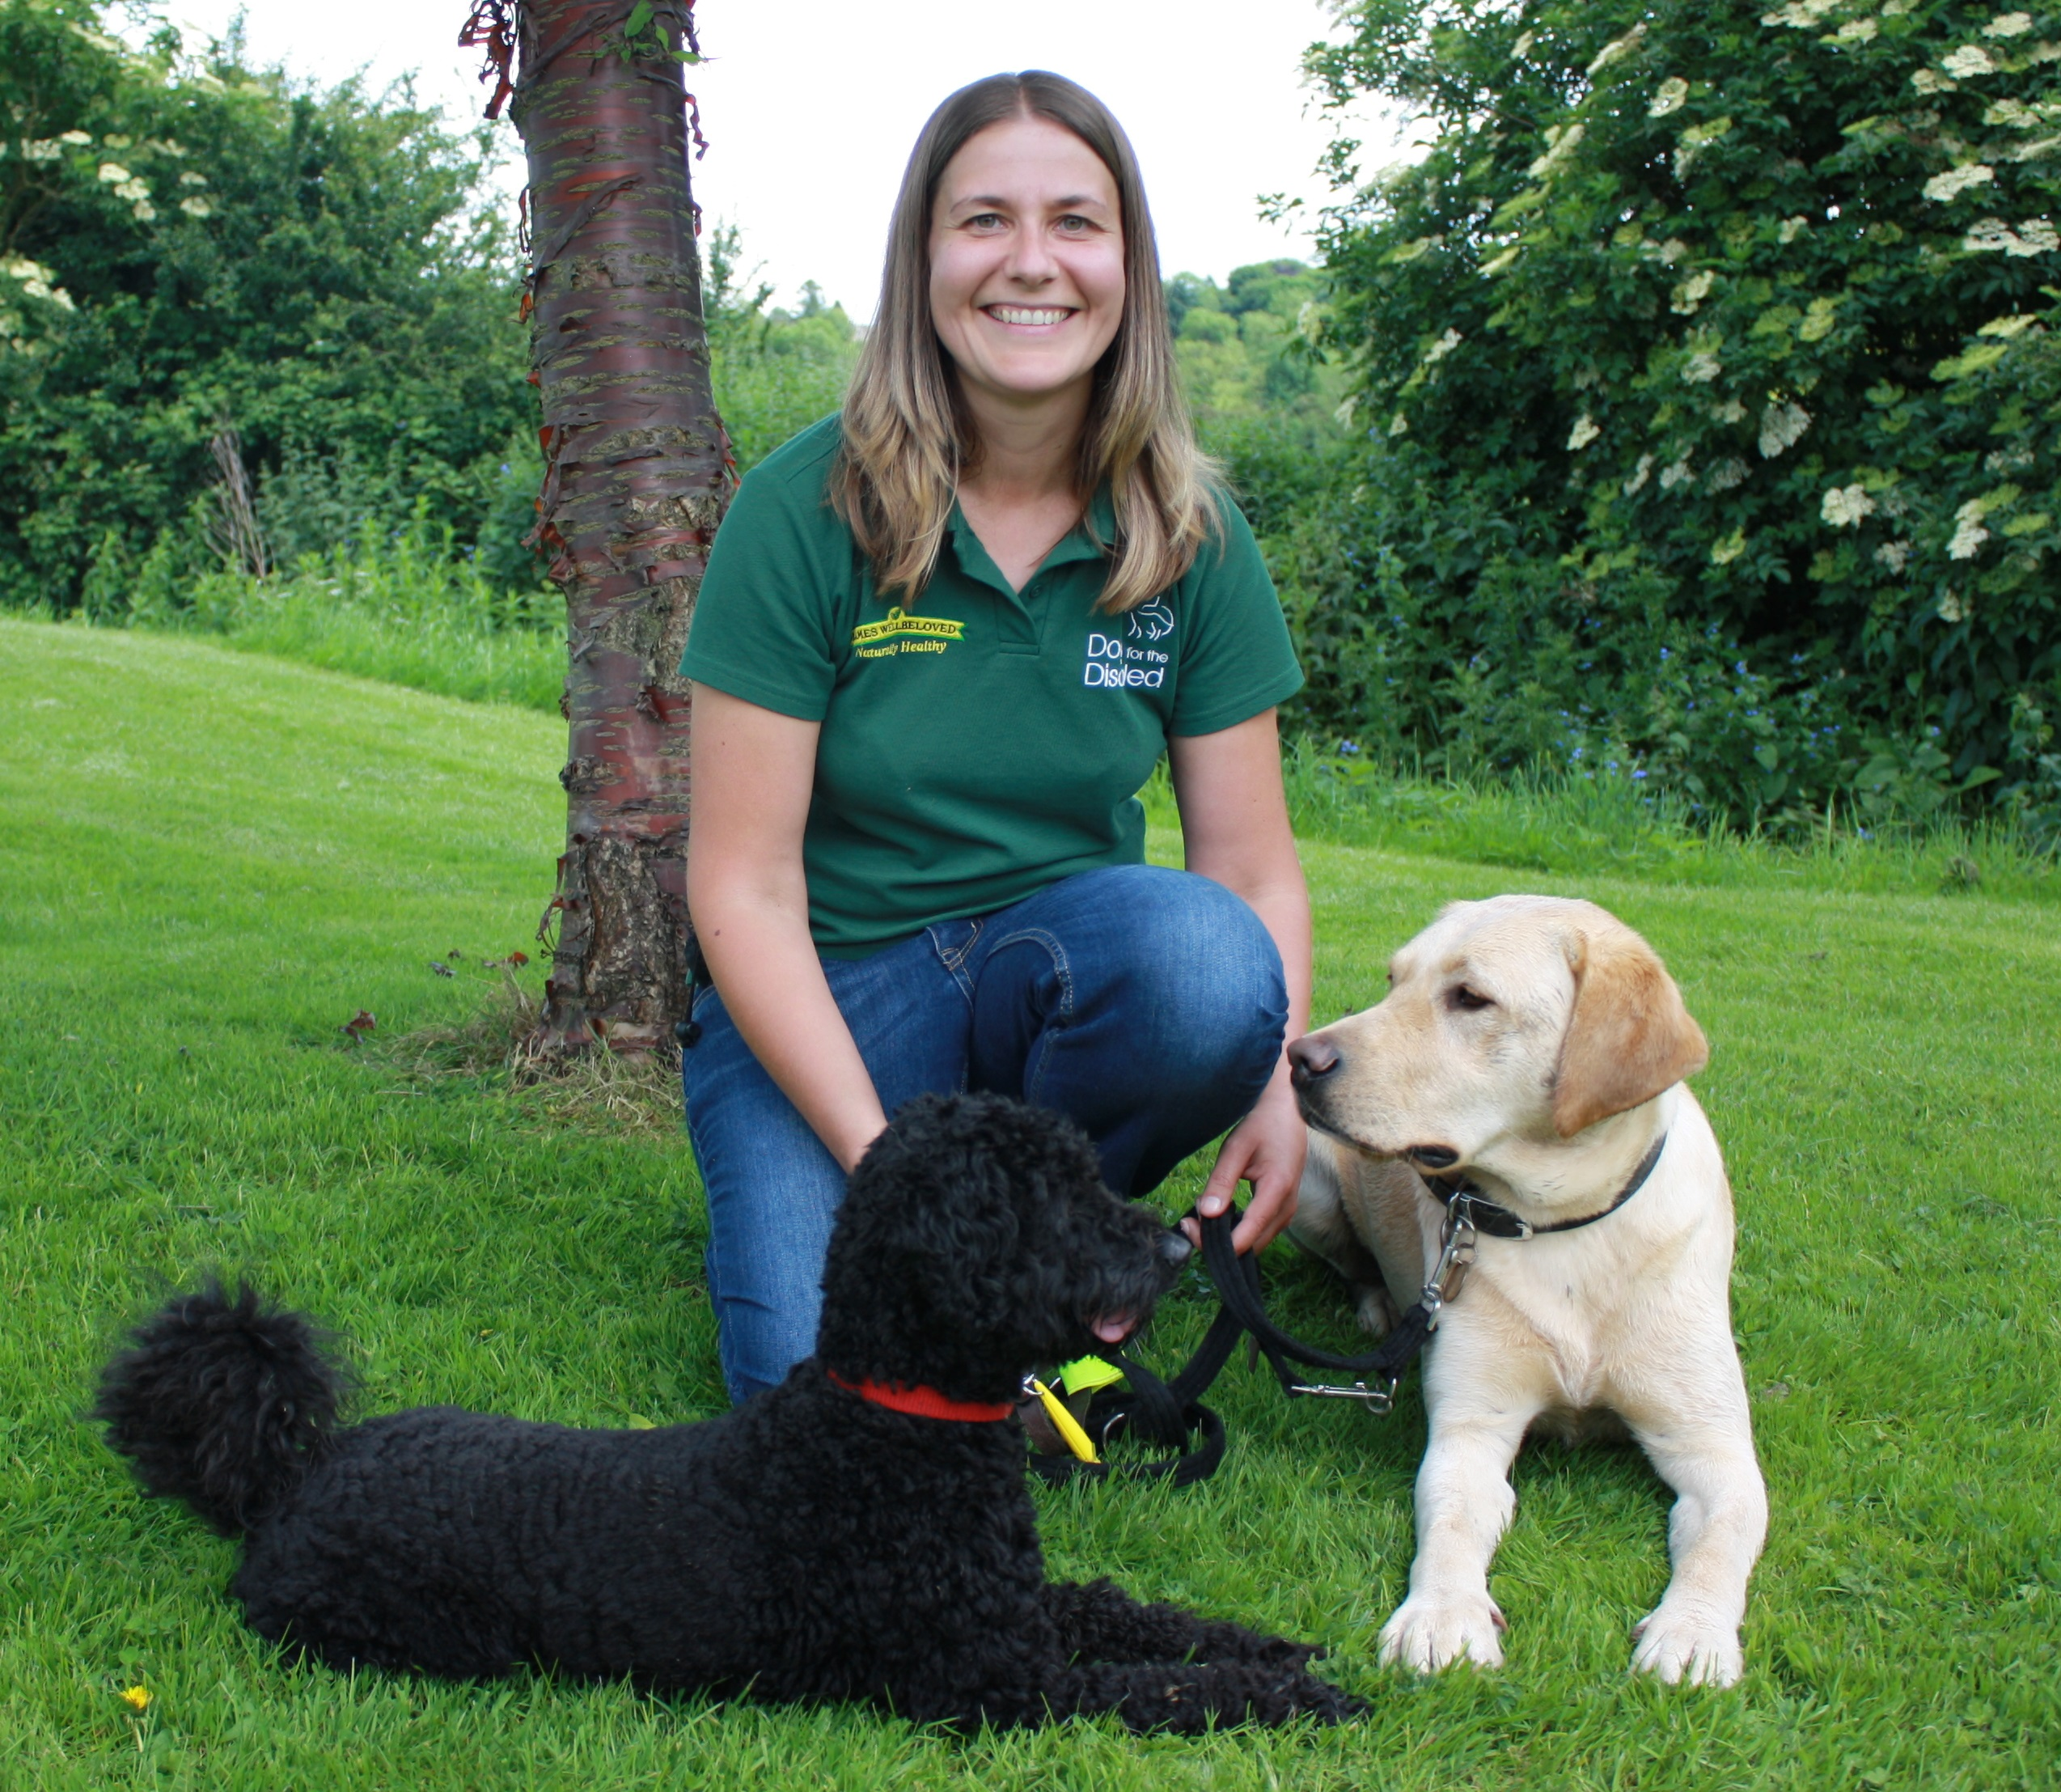 New Instructor Gayle begins work with first assistance dogs at